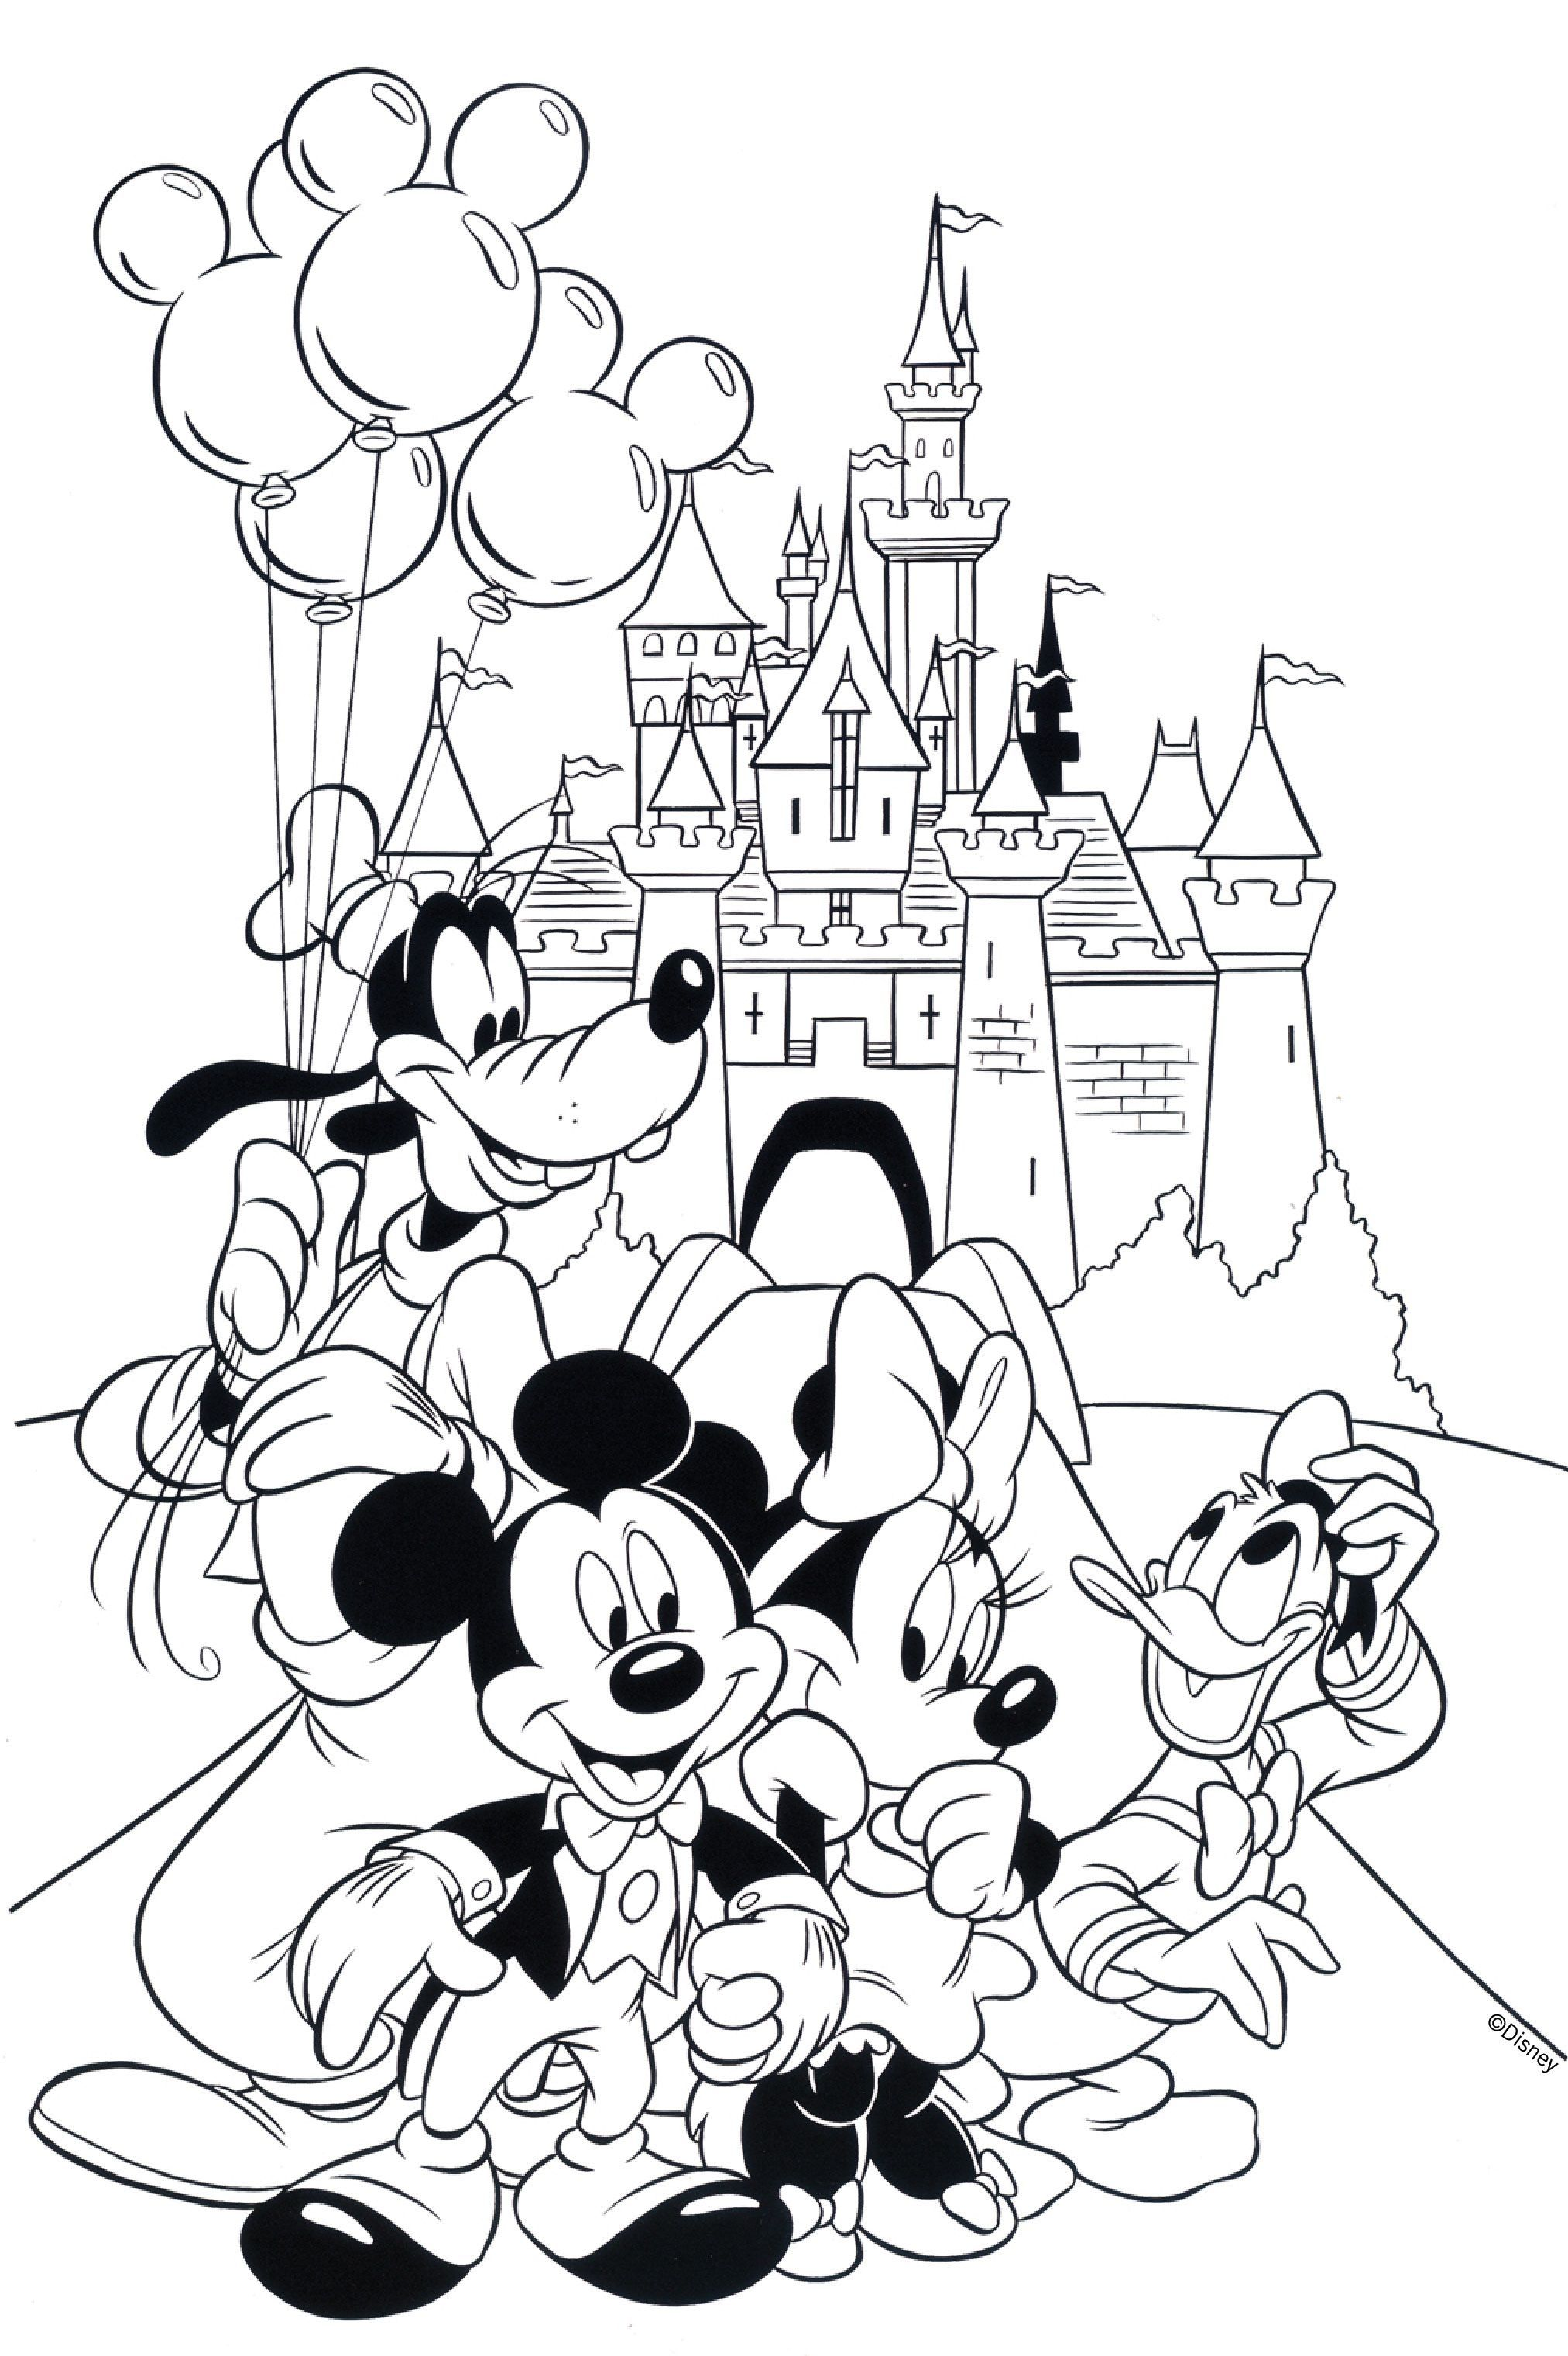 Disney Coloring Book Pages Mickey Coloring Pages Cartoon Coloring Pages Free Disney Coloring Pages